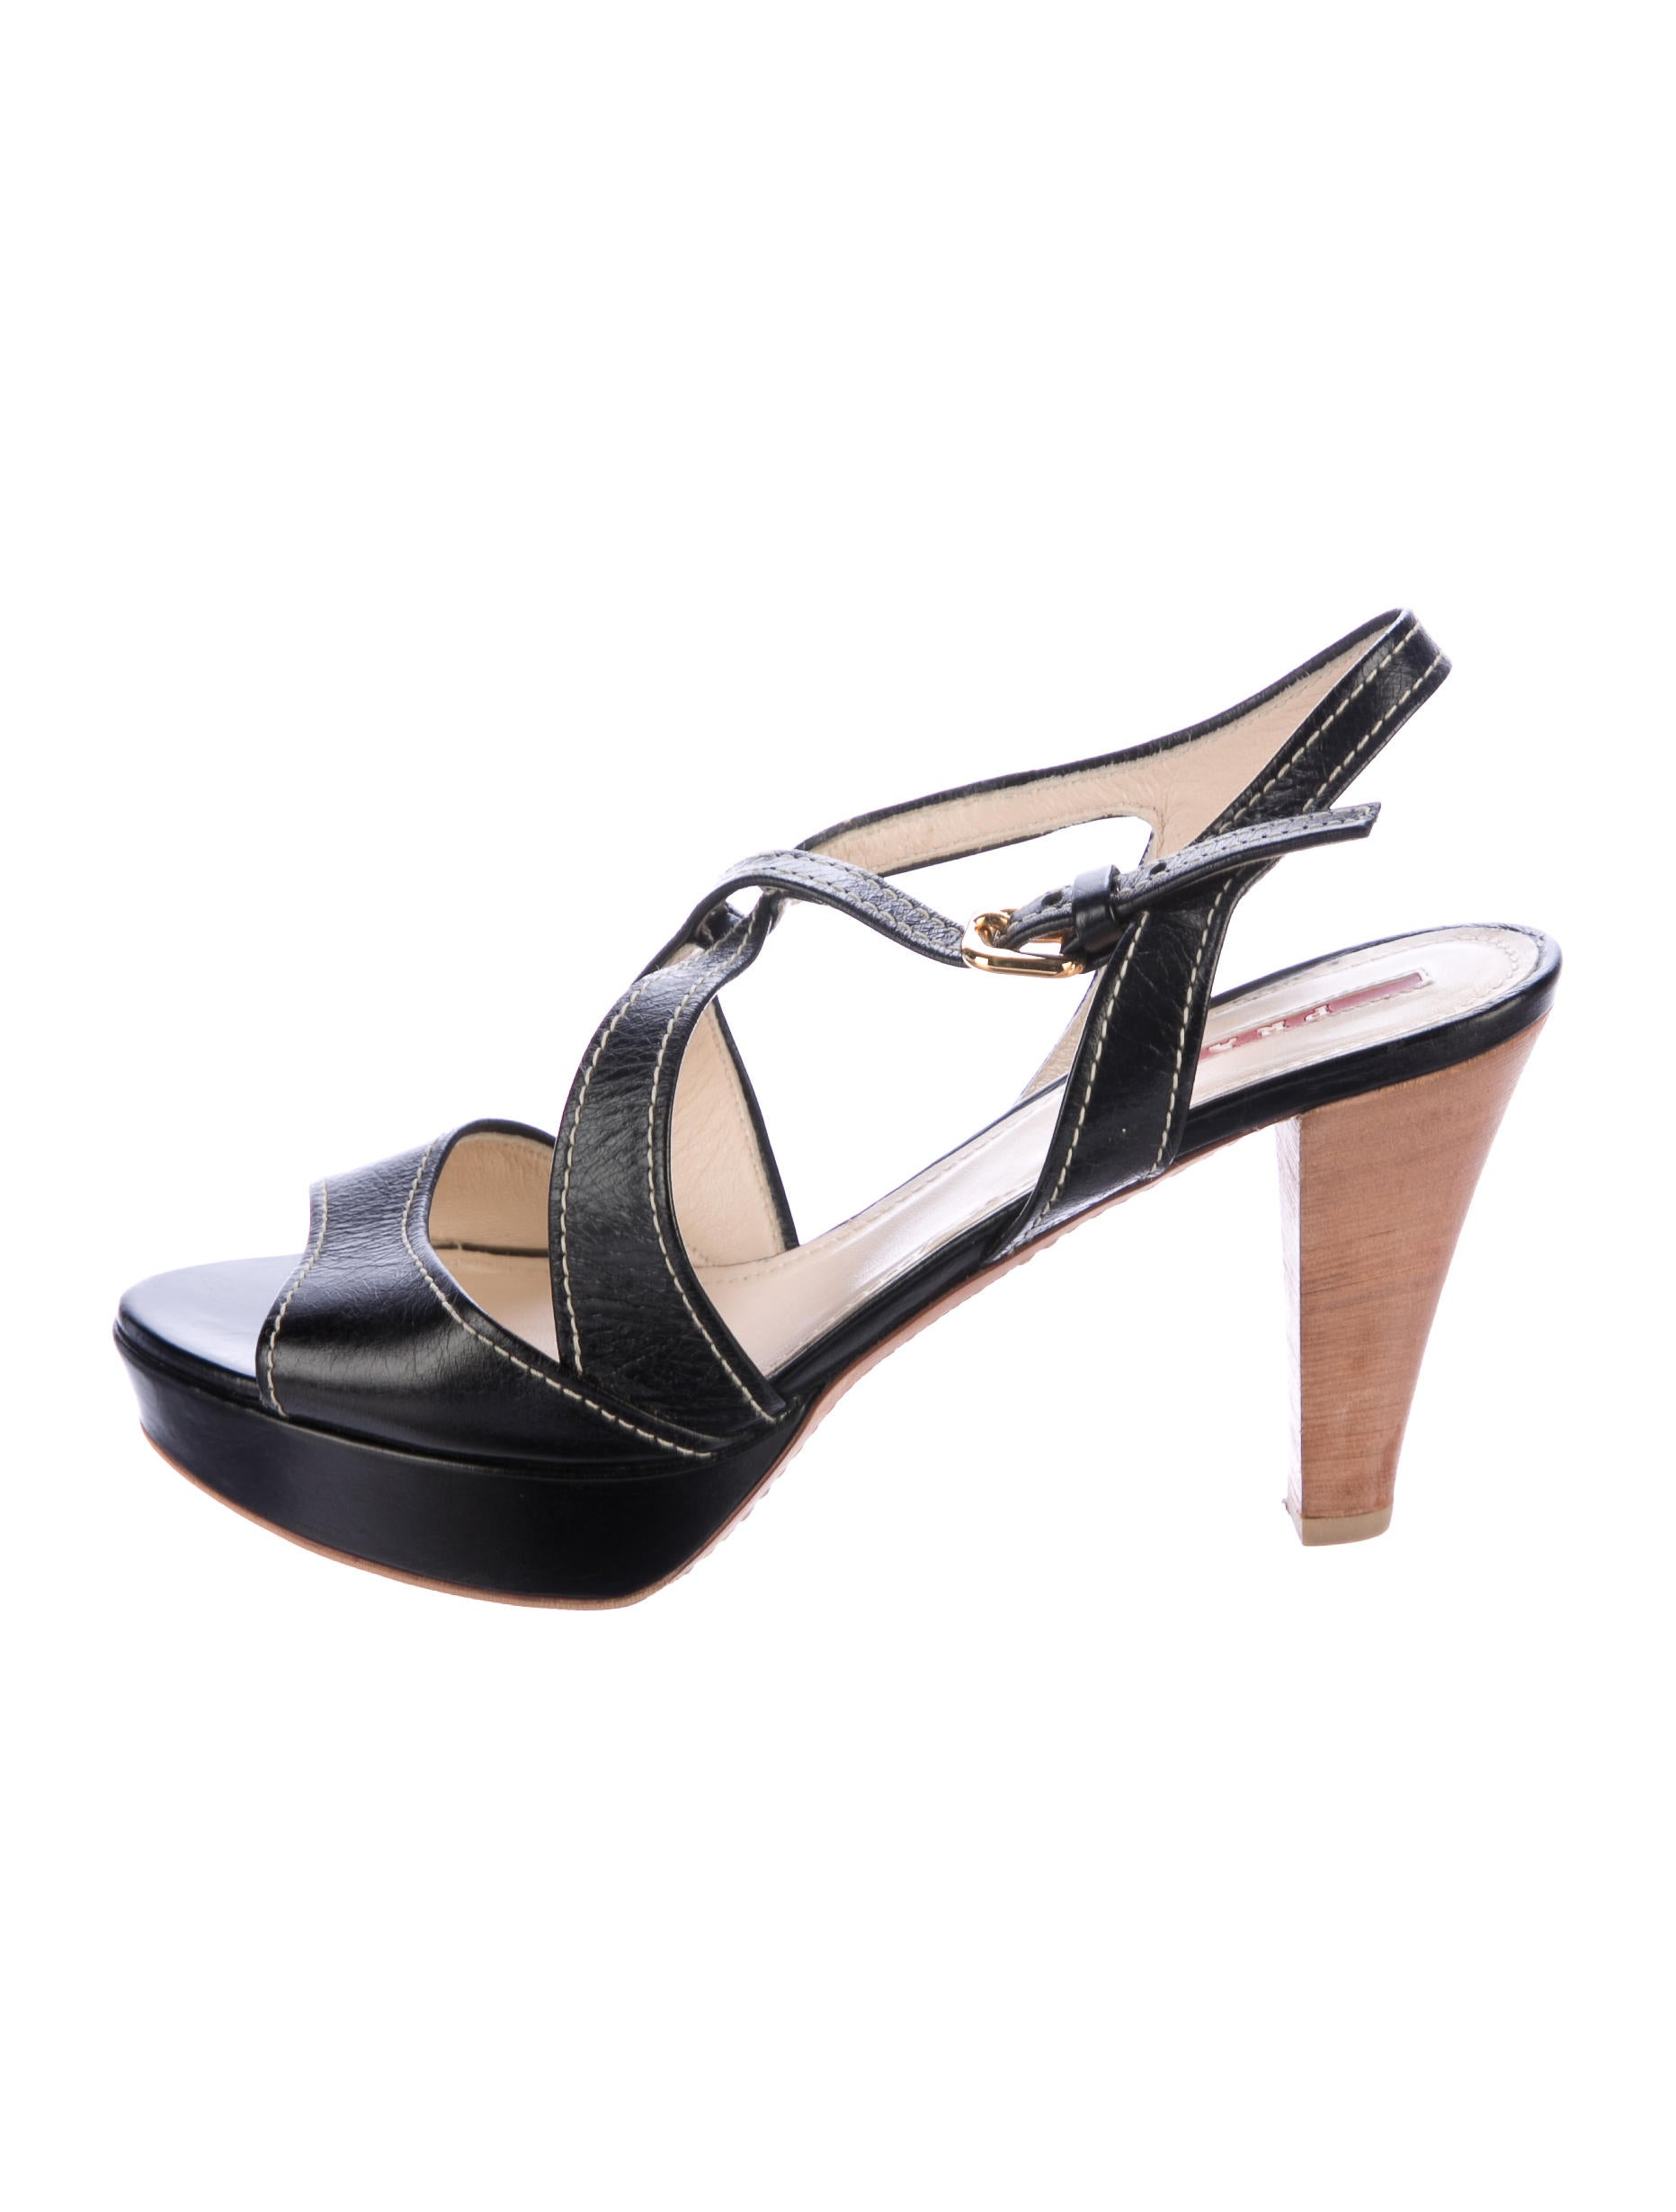 Prada Sport Crossover Platform Sandals cheap sale manchester great sale Manchester cheap price clearance perfect pay with visa sale online 0n9iB4Q